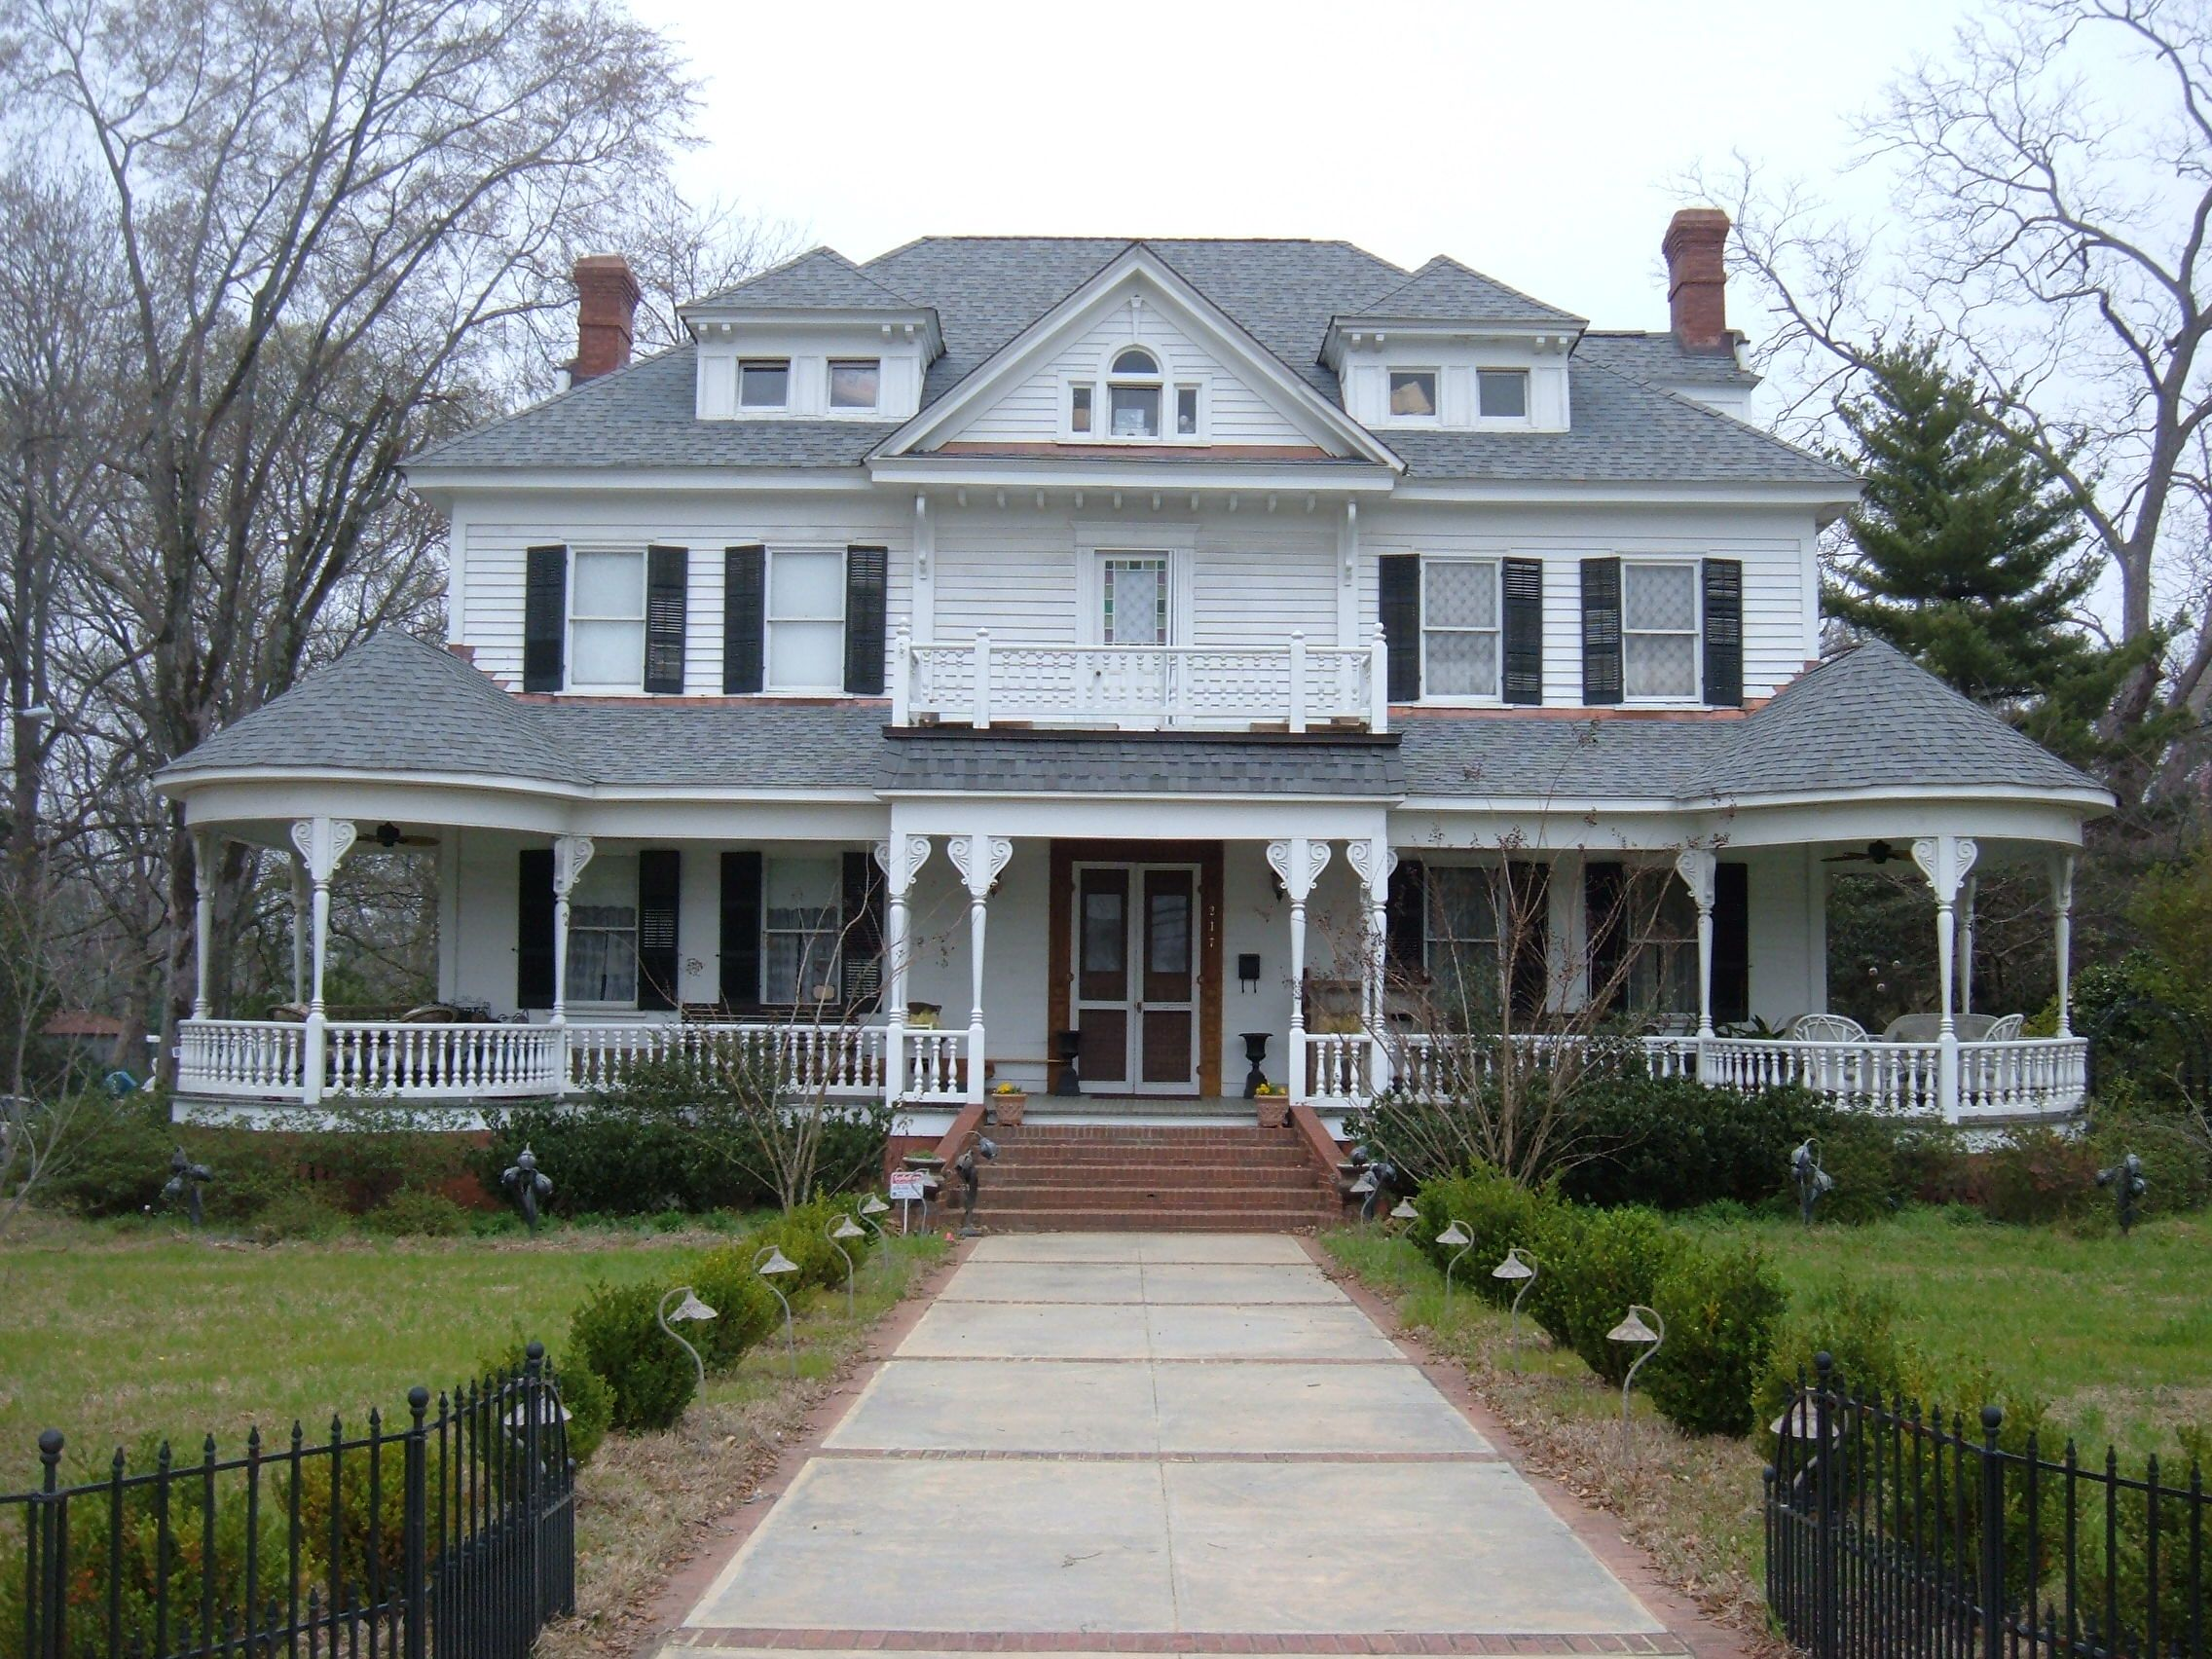 After Brantley Haygood House (Built 1850S)